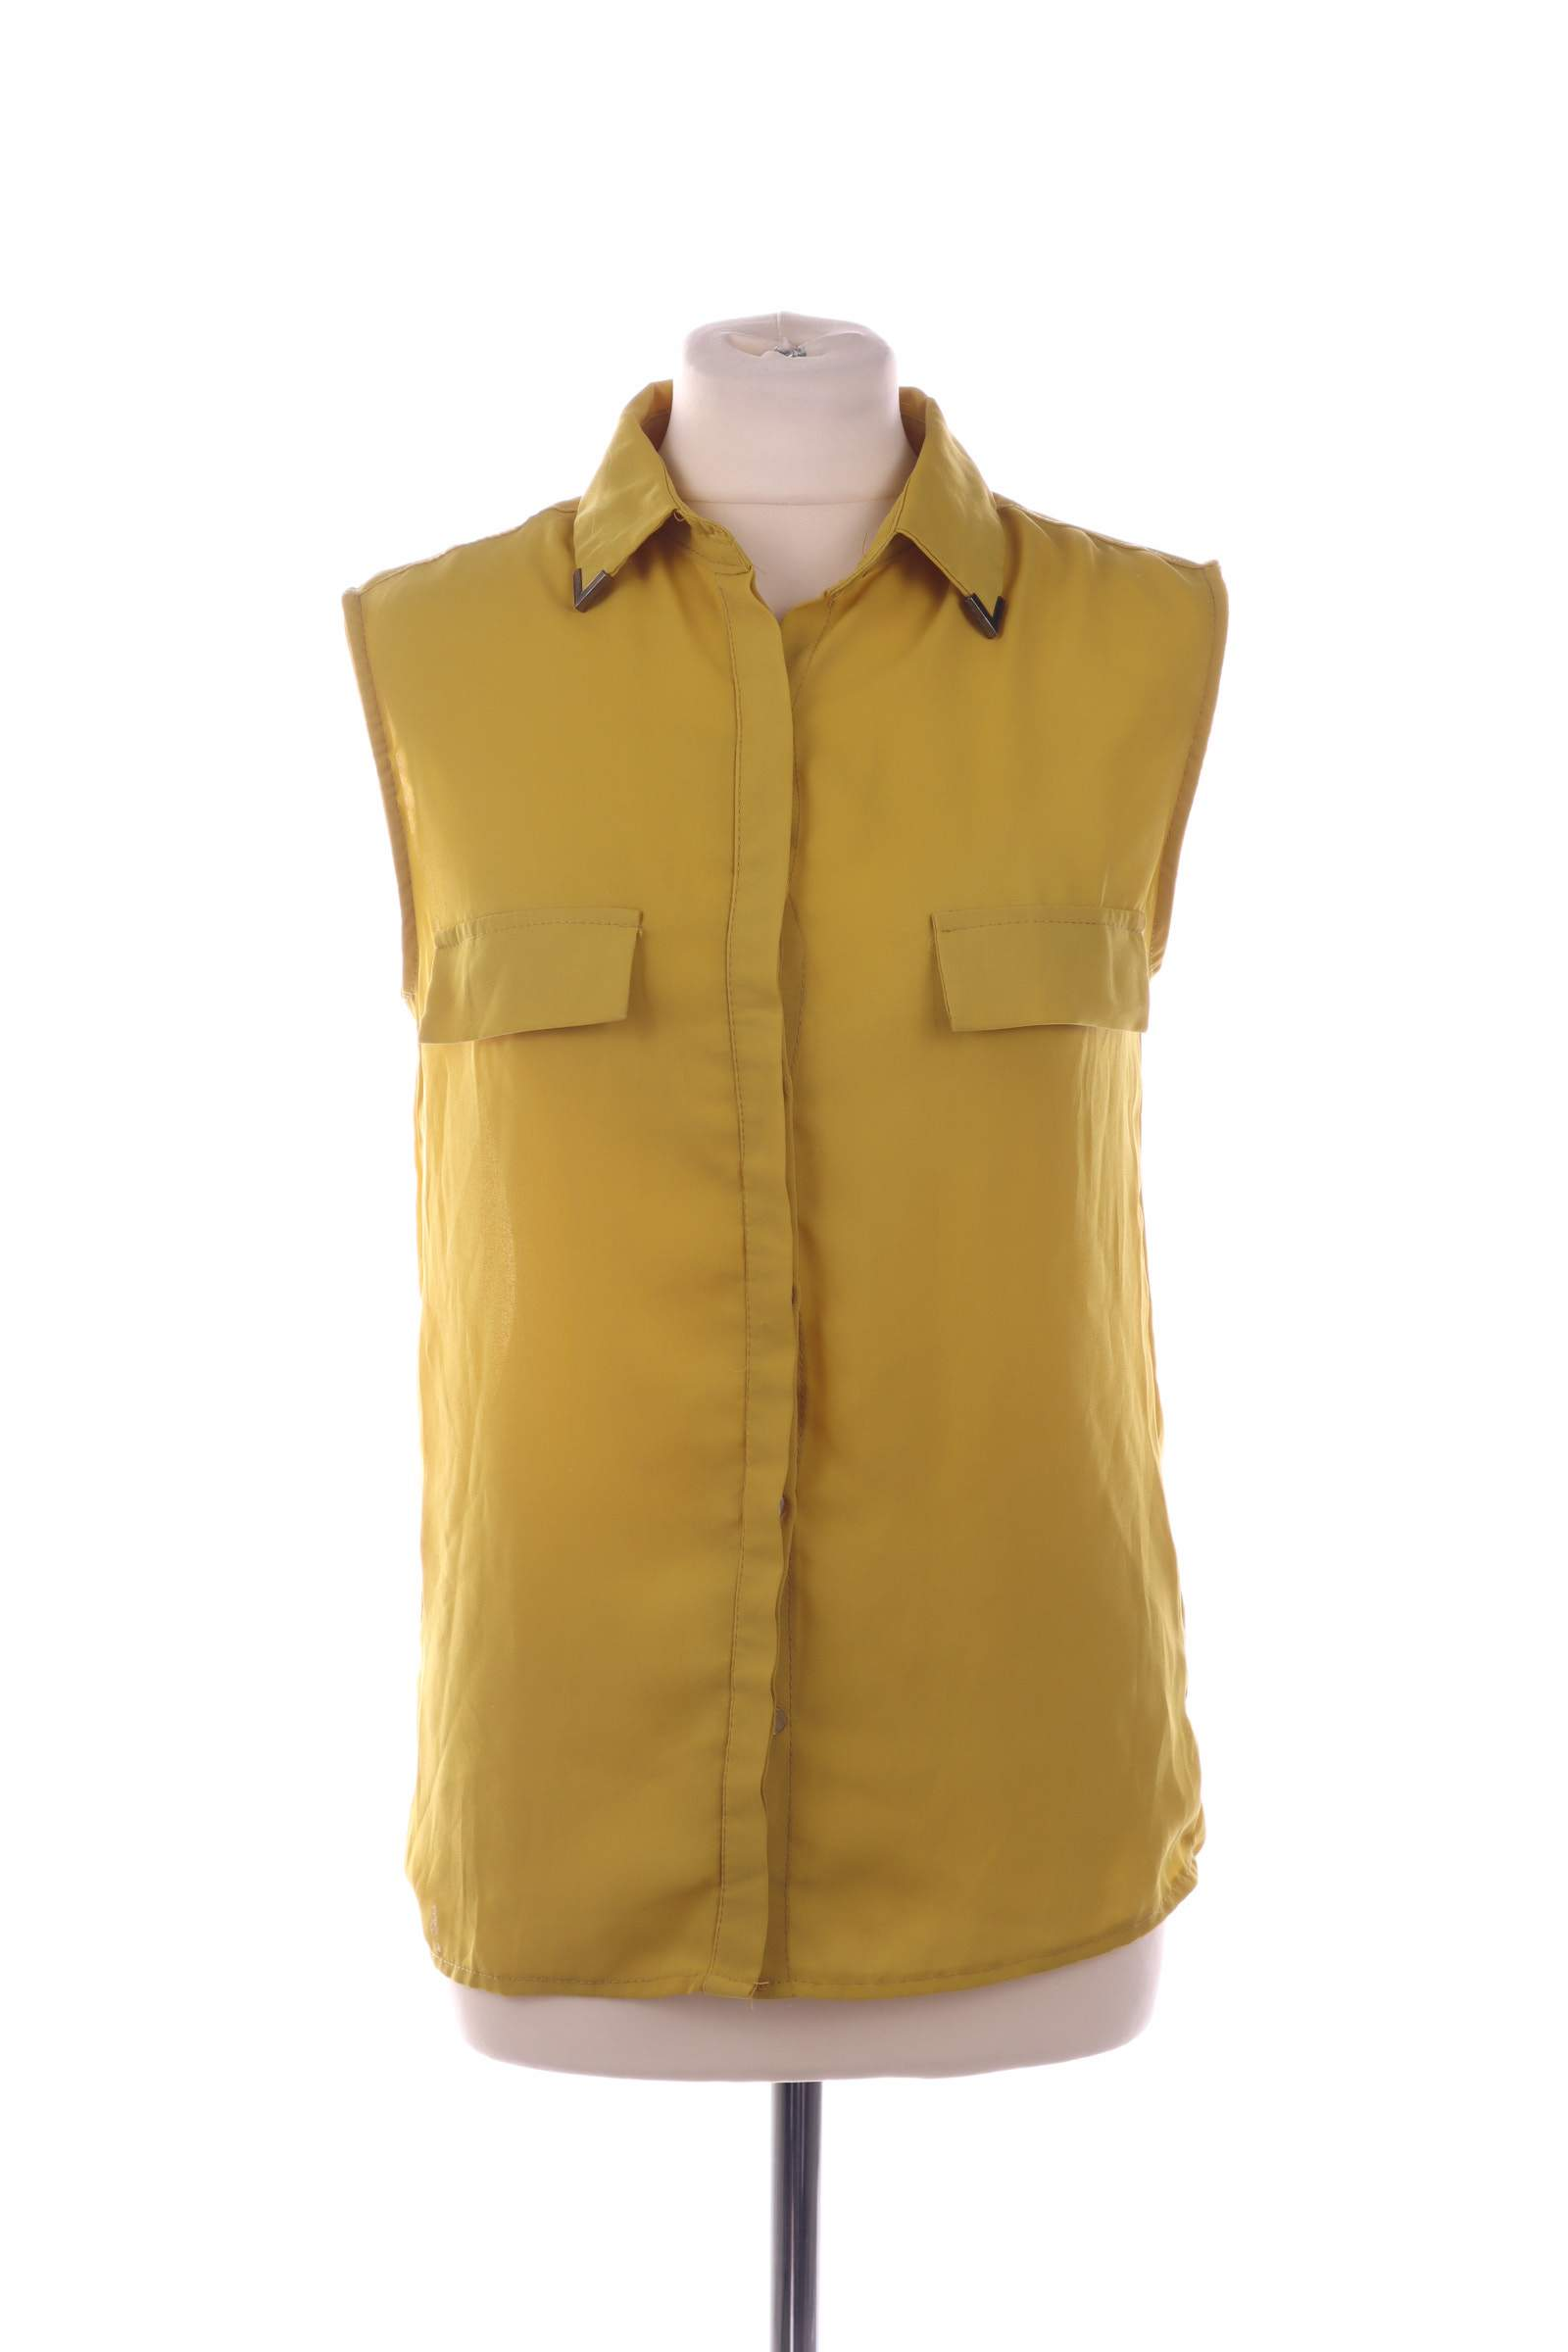 Trafaluc Yellow Top